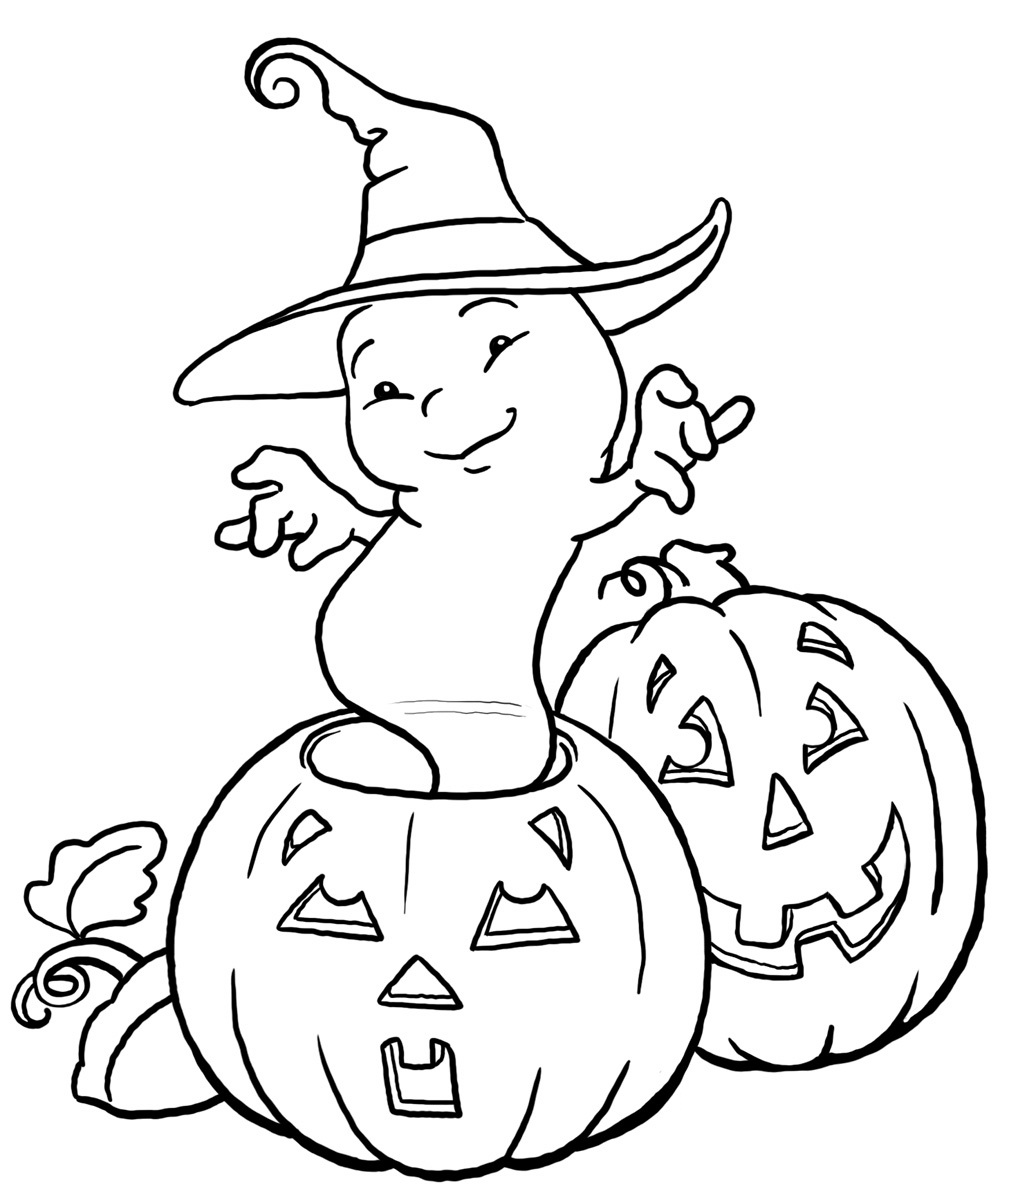 halloween ghost coloring pages halloween 2016 printable coloring pages for toddlers pages ghost halloween coloring